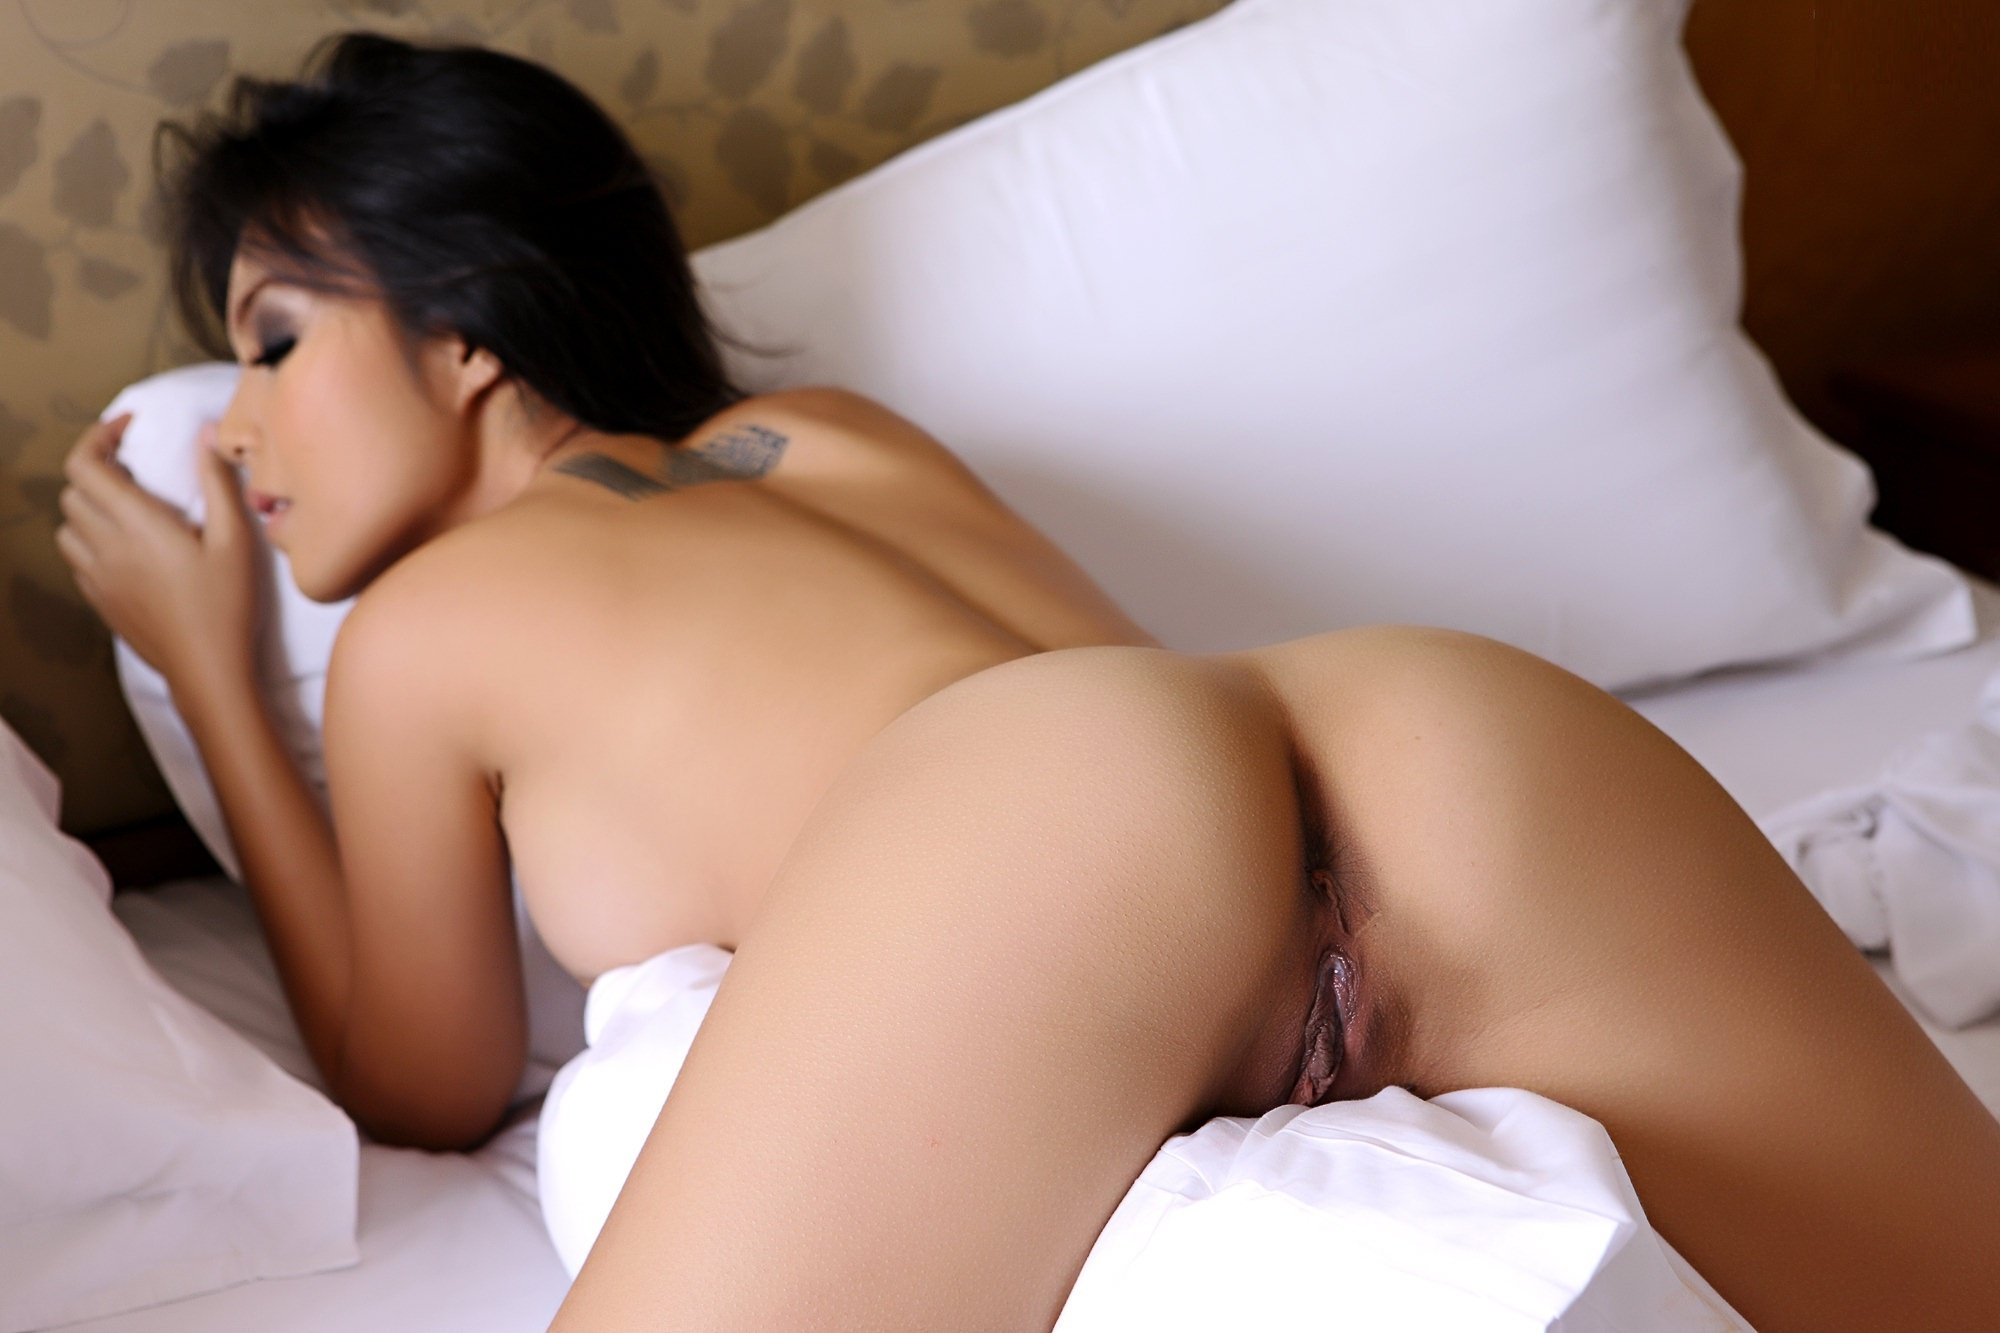 nude asian girls ass pussy-naked photo